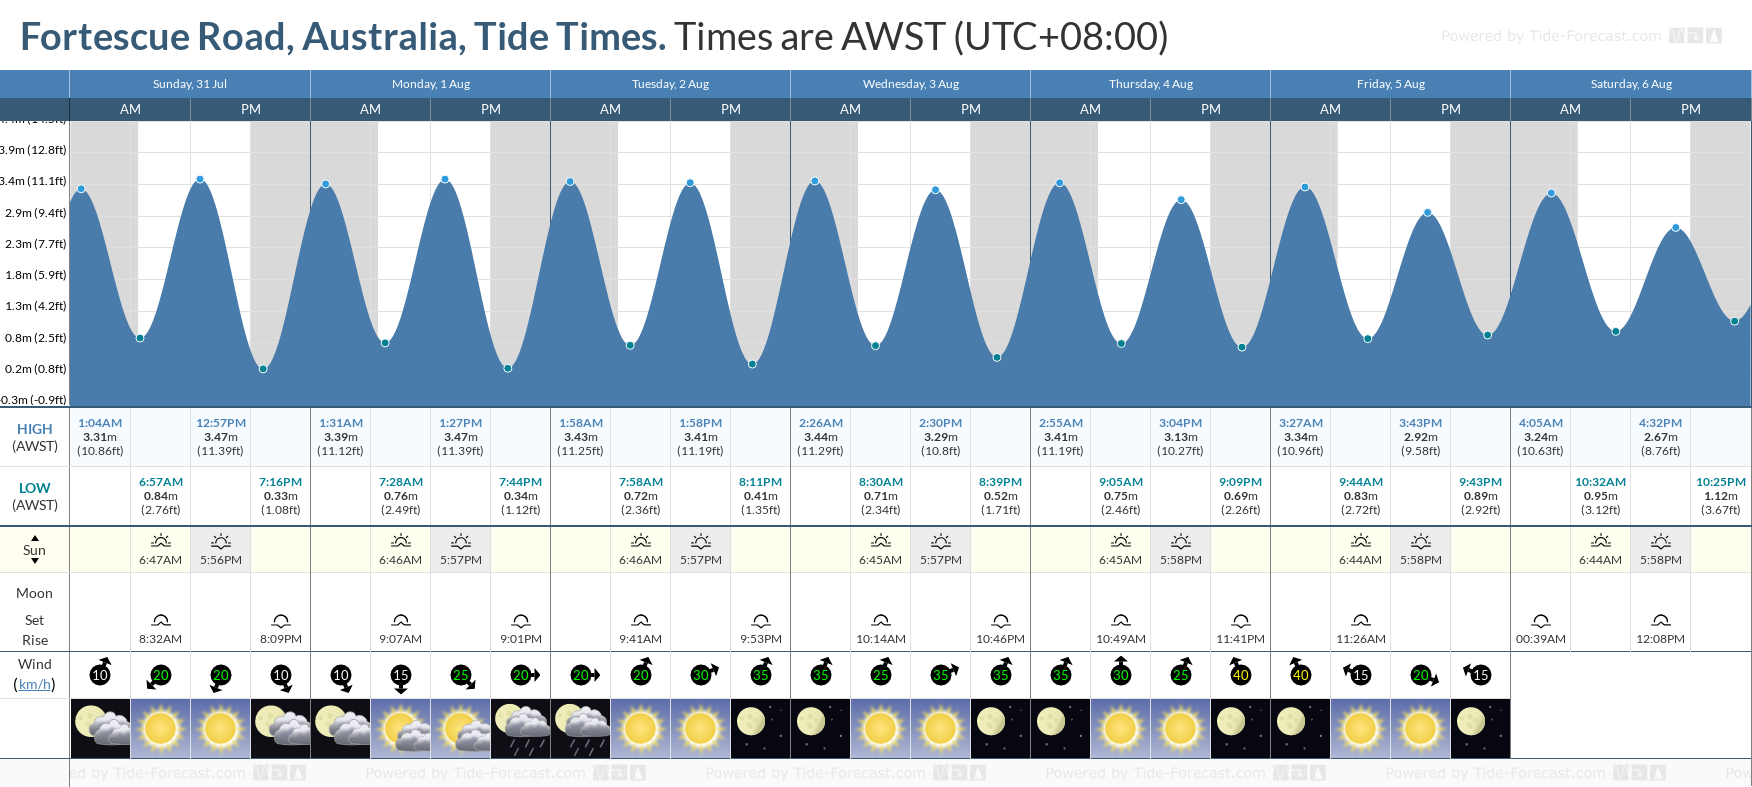 Fortescue Road, Australia Tide Chart including high and low tide tide times for the next 7 days